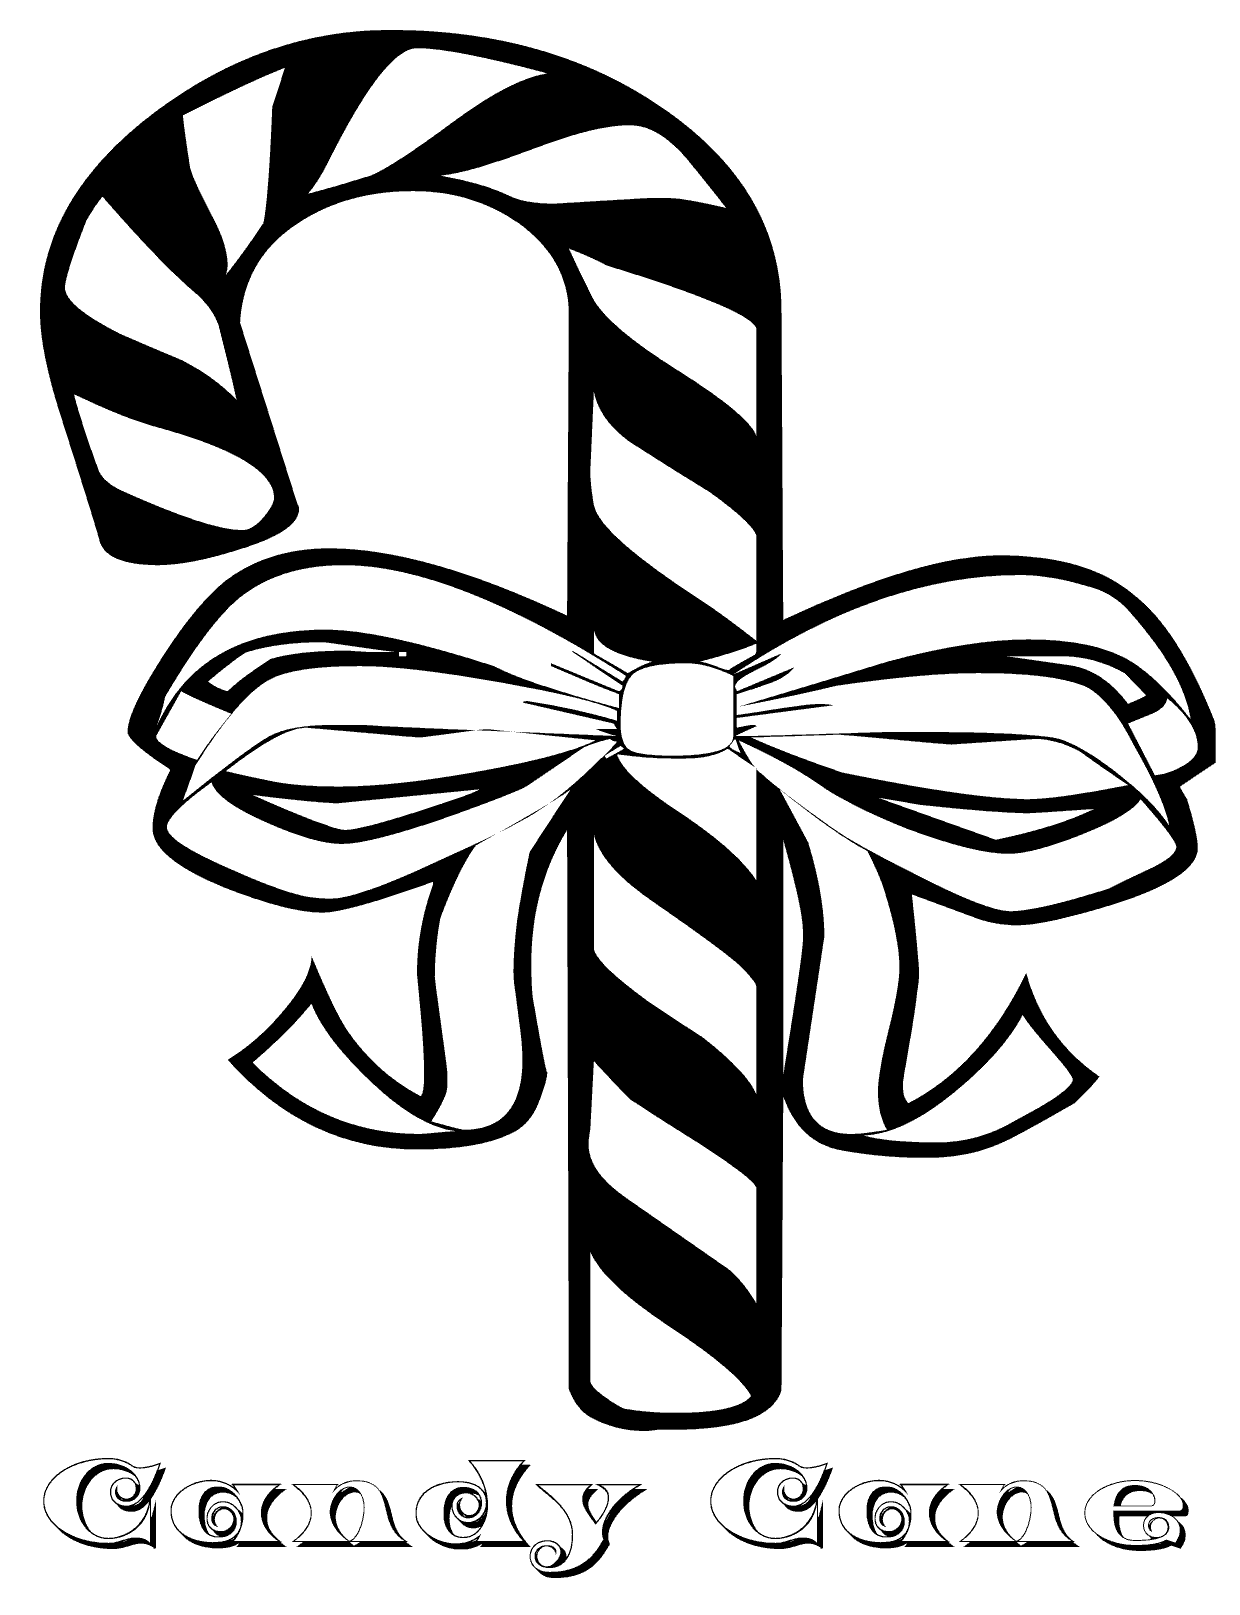 candy-cane coloring pages 15,printable,coloring pages